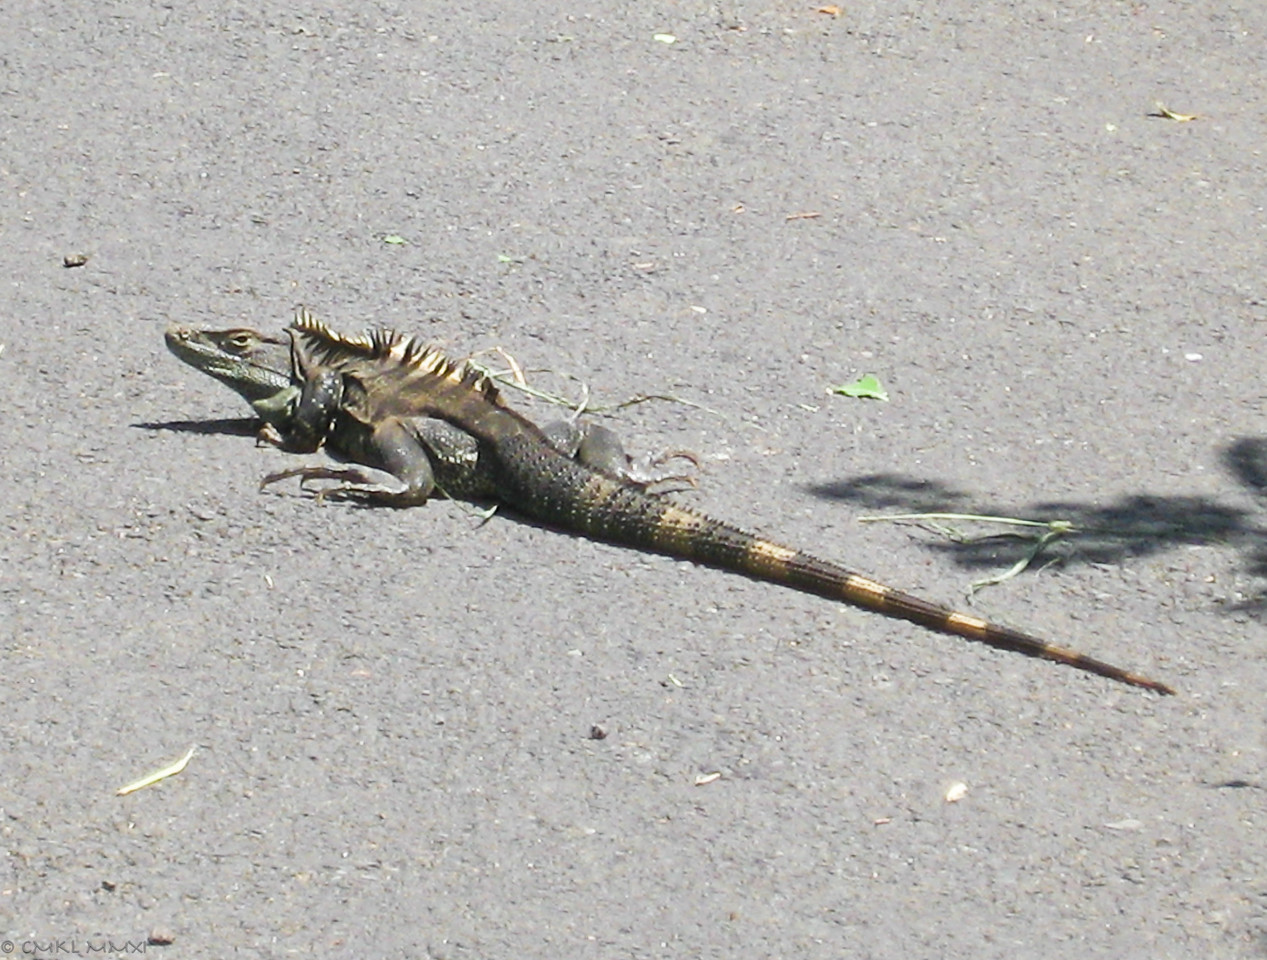 'Black Iguana'<br /> Ctenosaura similis, Gray 1831, Iguanidae,<br /> only about 60cm